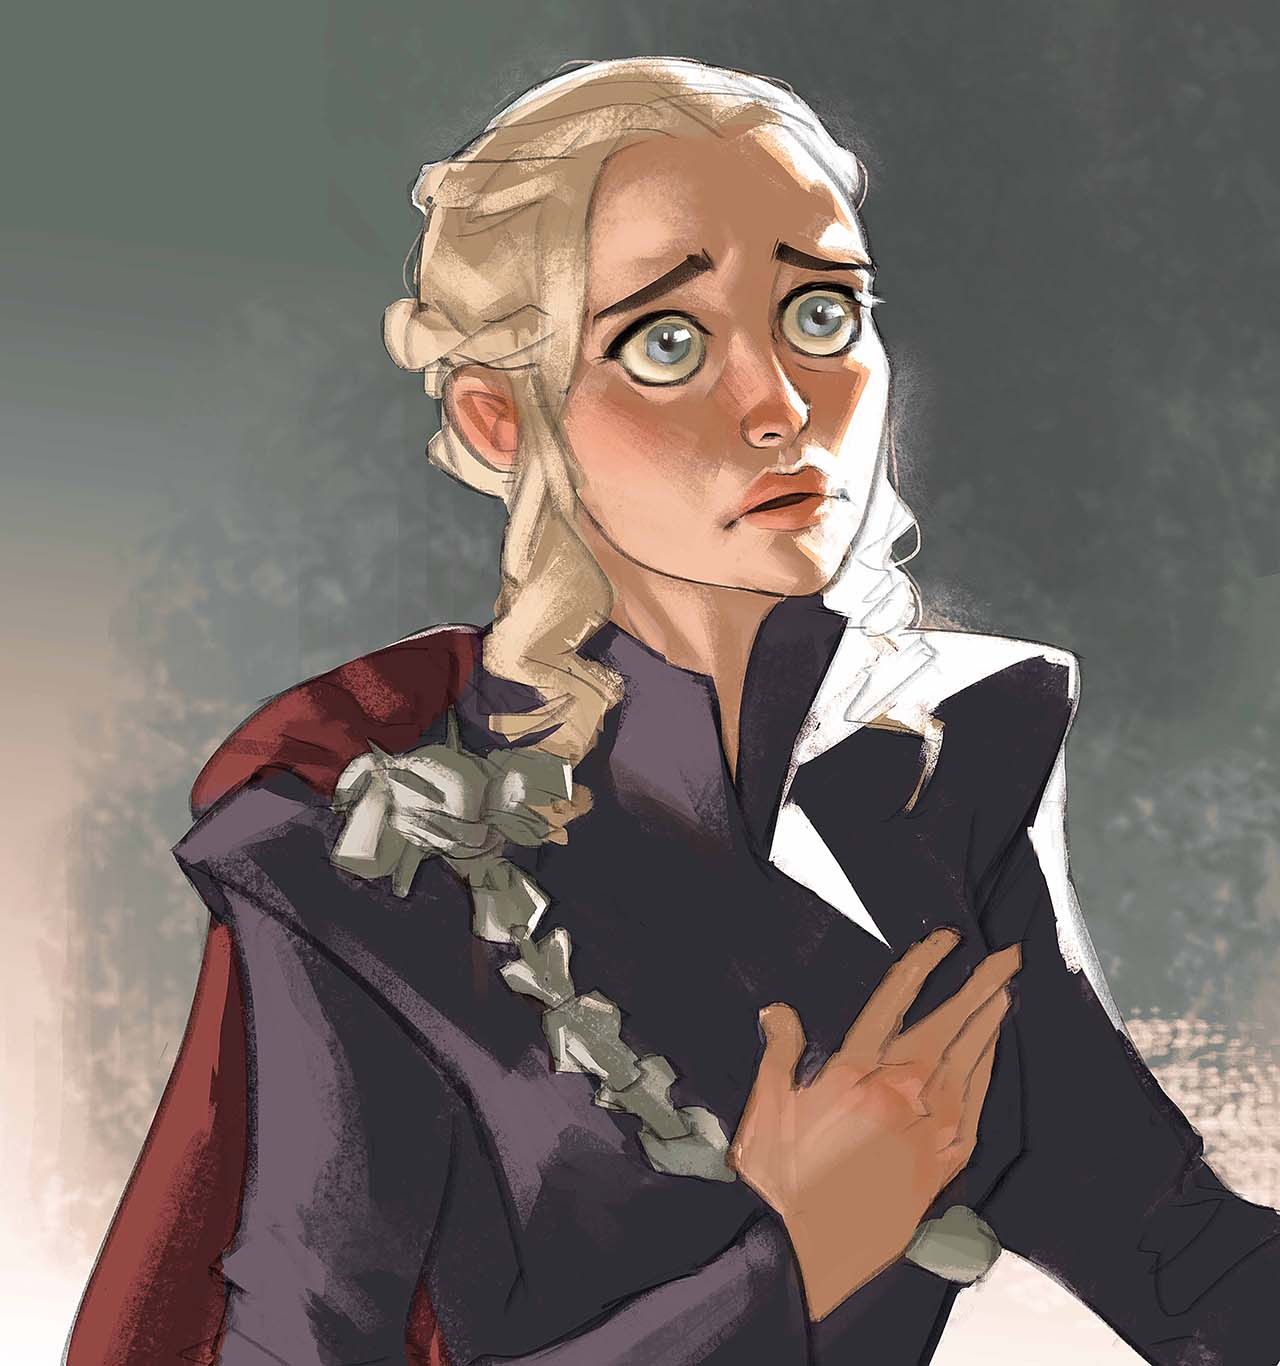 Artist Creates Unique Character Arts From Game Of Thrones – Daenerys Targaryen Character Art By Ramón Nuñez